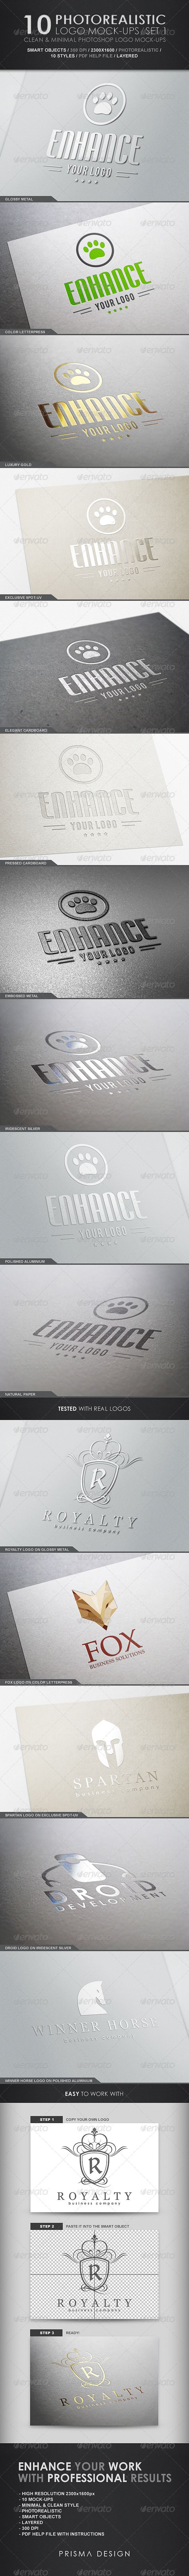 10 Photorealistic Logo Mock-Ups : Set 1